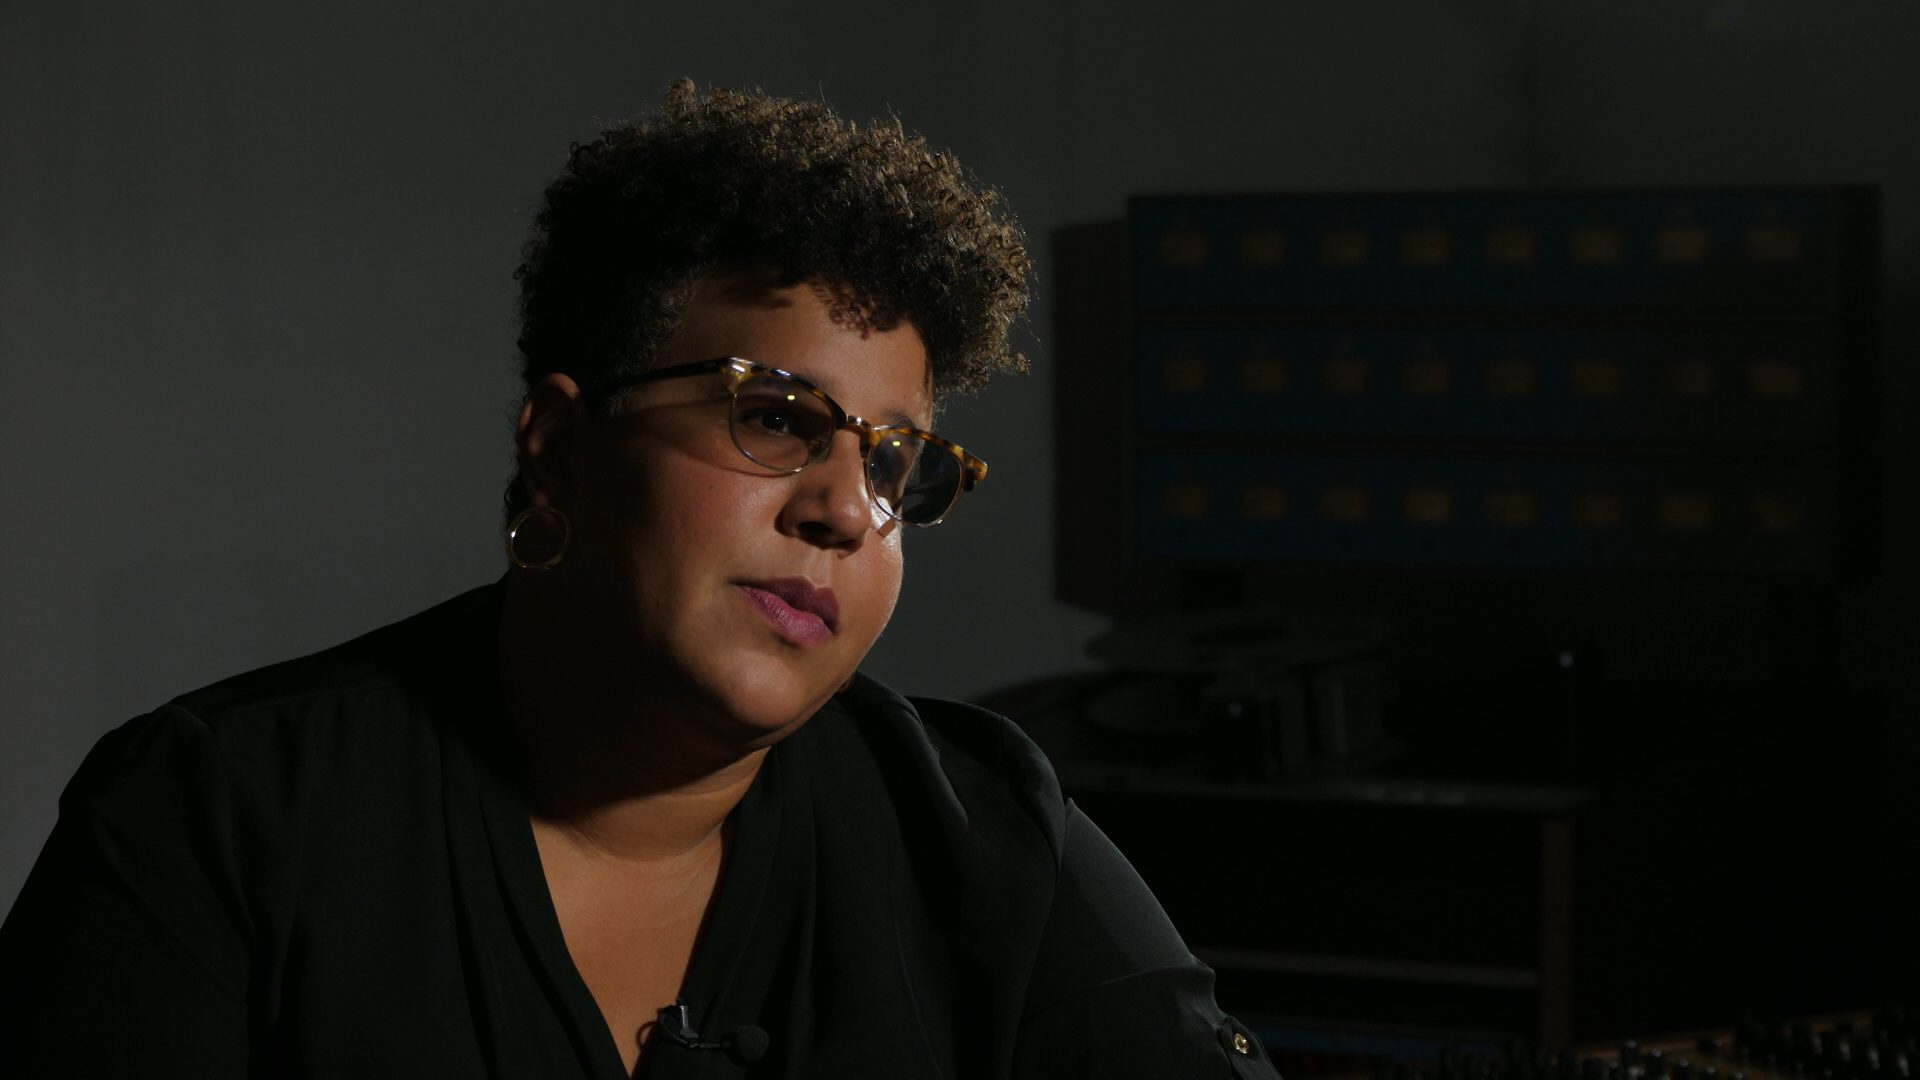 Alabama Shakes' Brittany Howard on her solo album, growing up as a mixed race child in Alabama and inspiring the younger generation